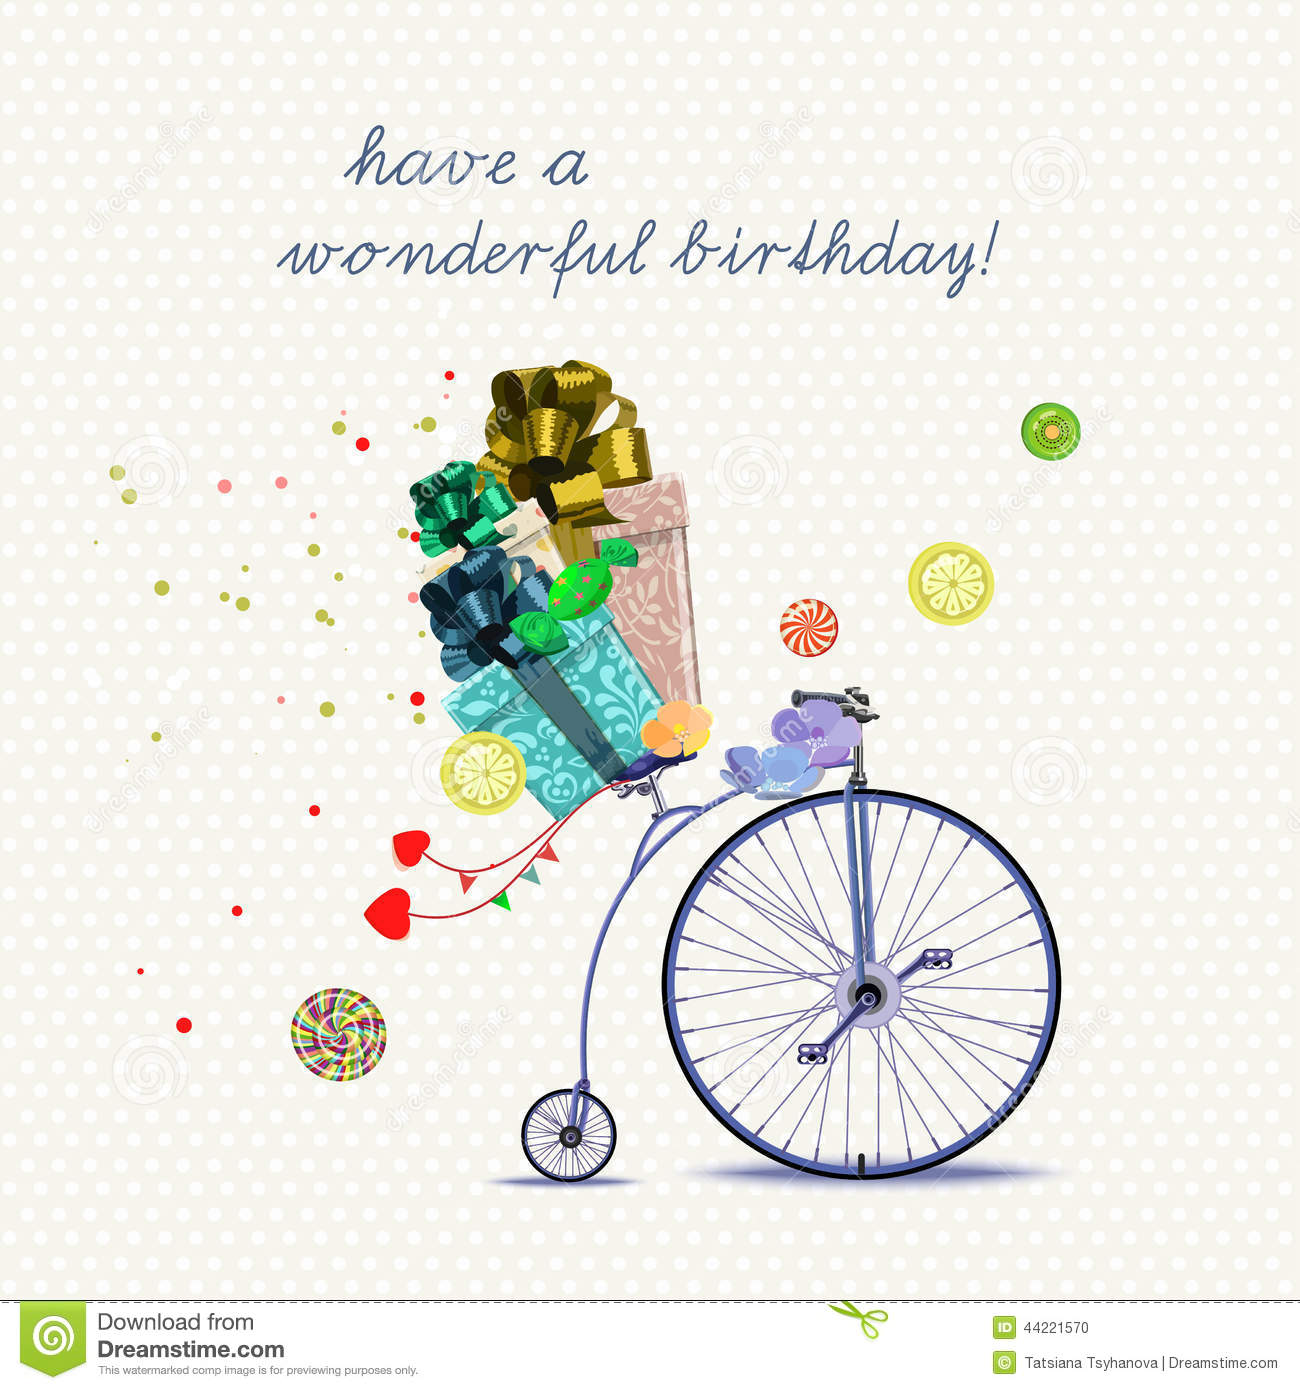 Birthday greeting card with bicycle and gifts in cartoon style on birthday greeting card with bicycle and gifts in cartoon style on light background vector illustration kristyandbryce Image collections